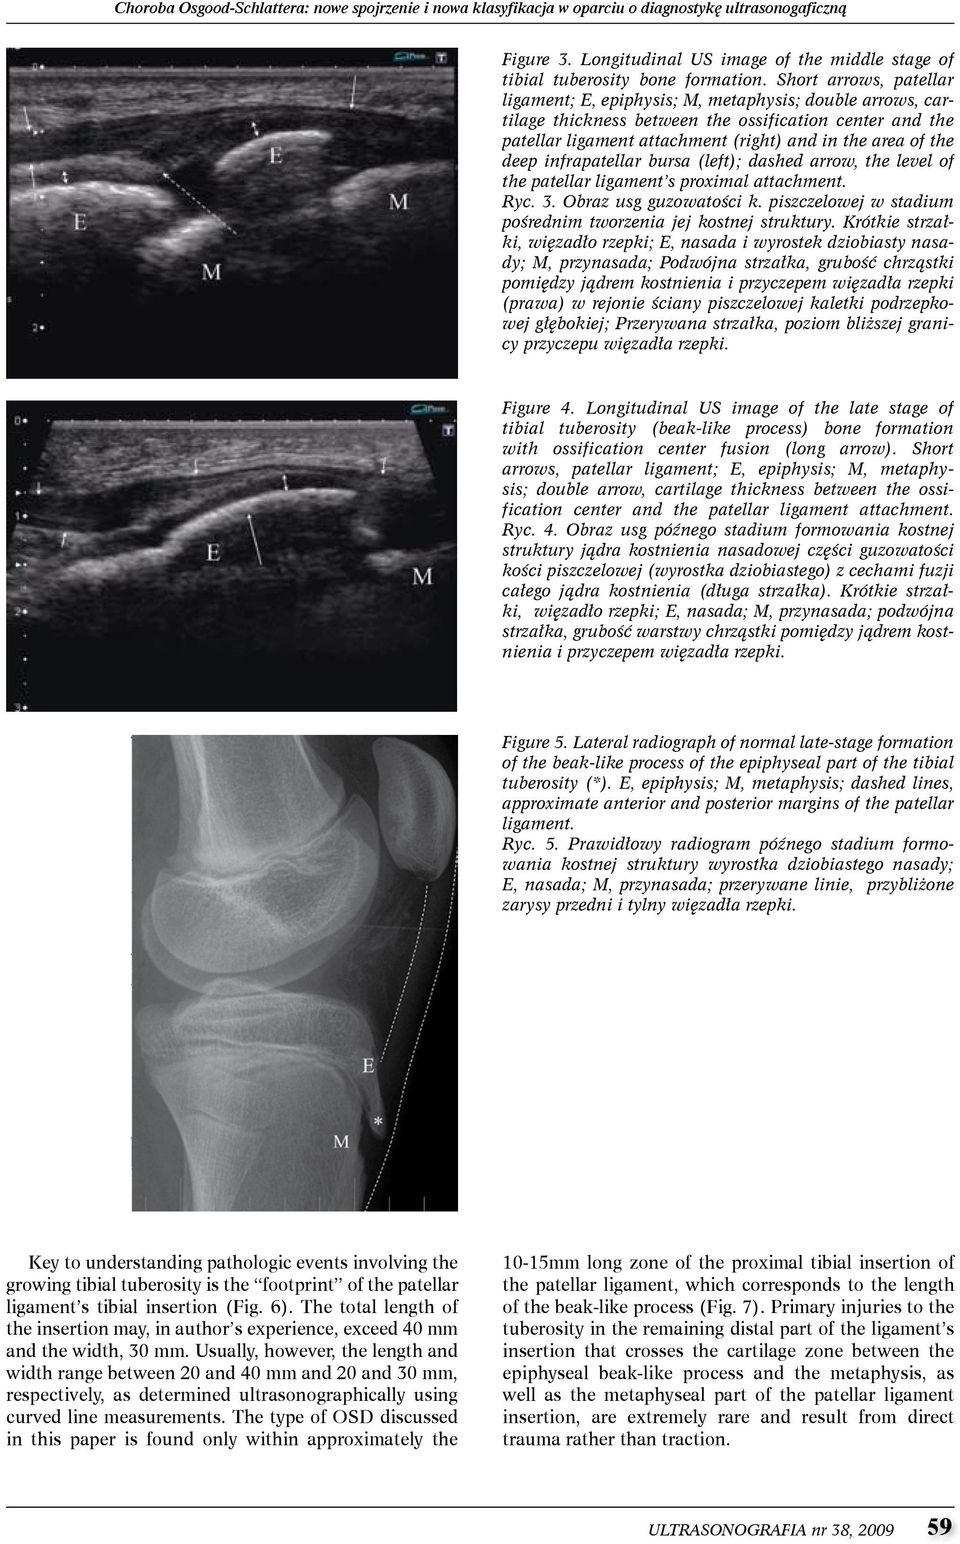 deep infrapatellar bursa (left); dashed arrow, the level of the patellar ligament s proximal attachment. Ryc. 3. Obraz usg guzowatości k.